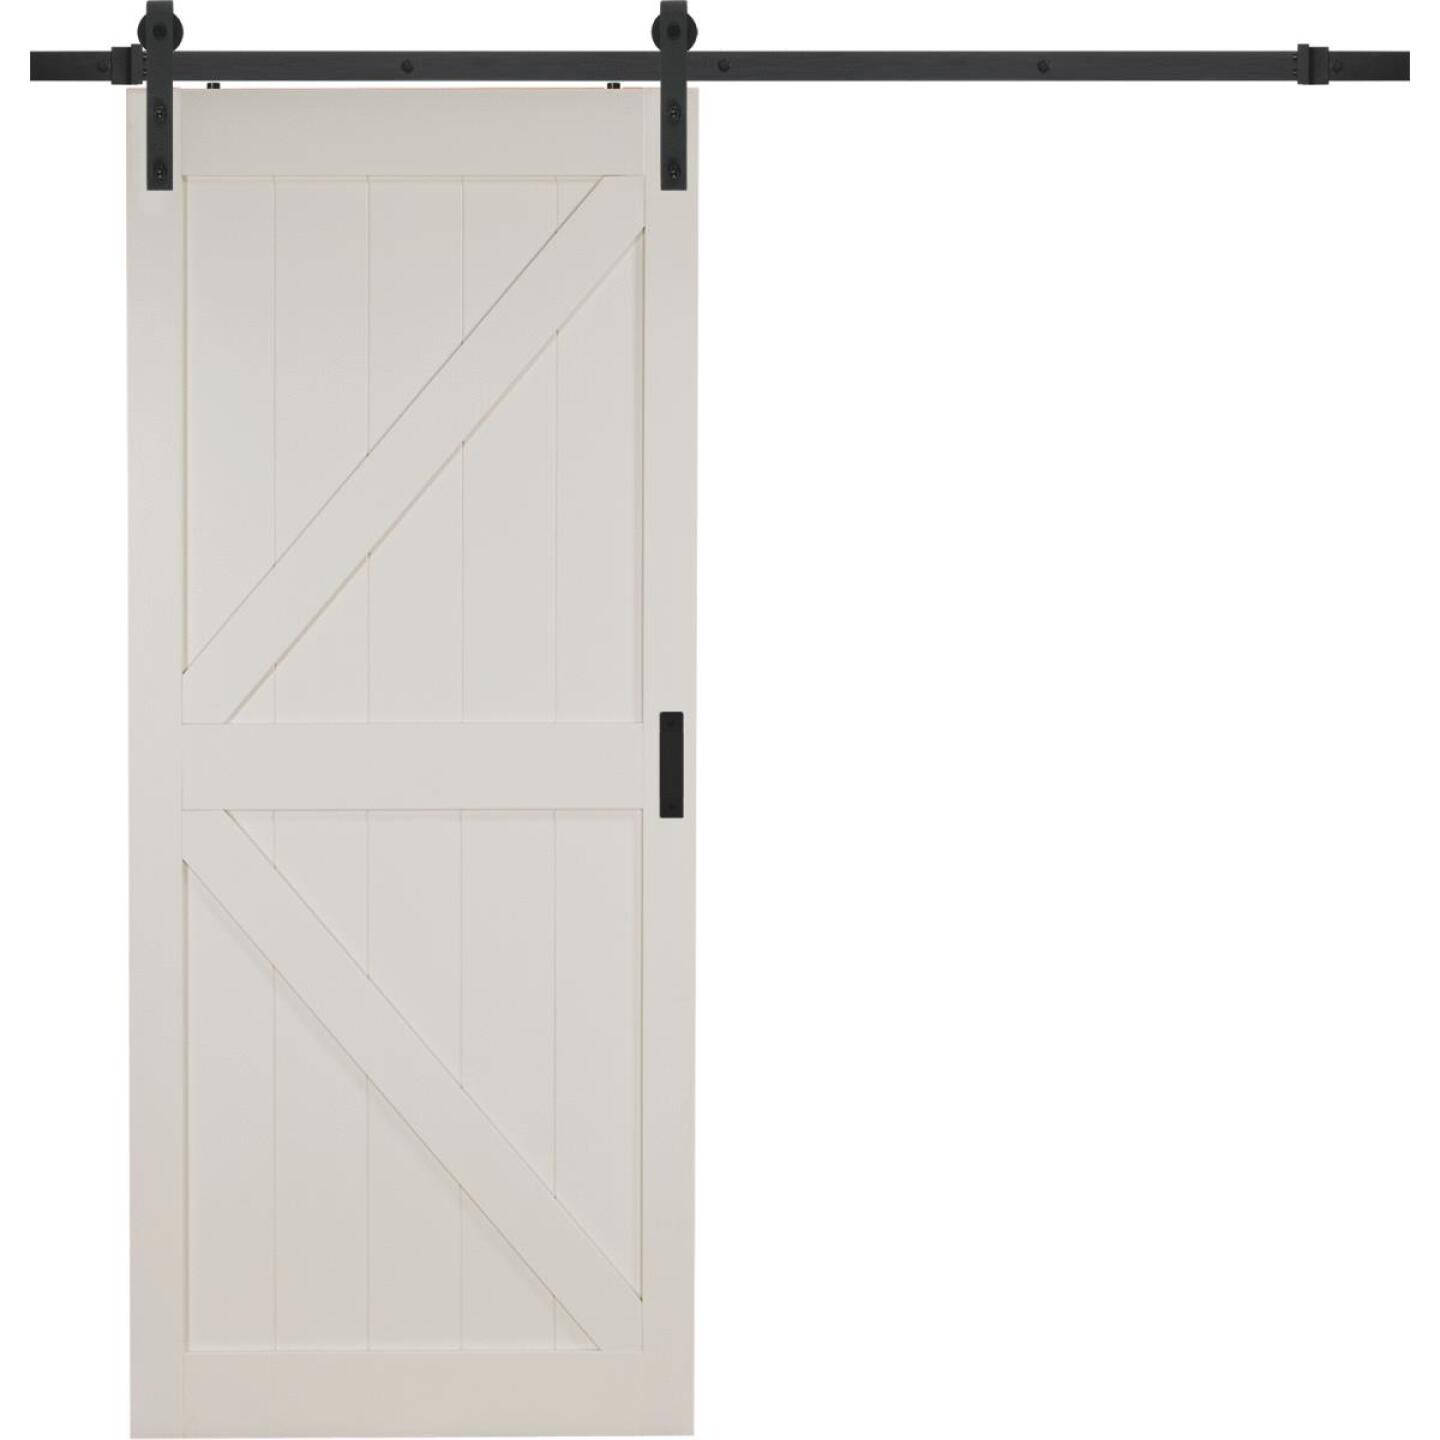 Erias Home Designs 36 In. x 84 In. x 1-3/8 In. K-Style Stone Barn Door Kit Image 1